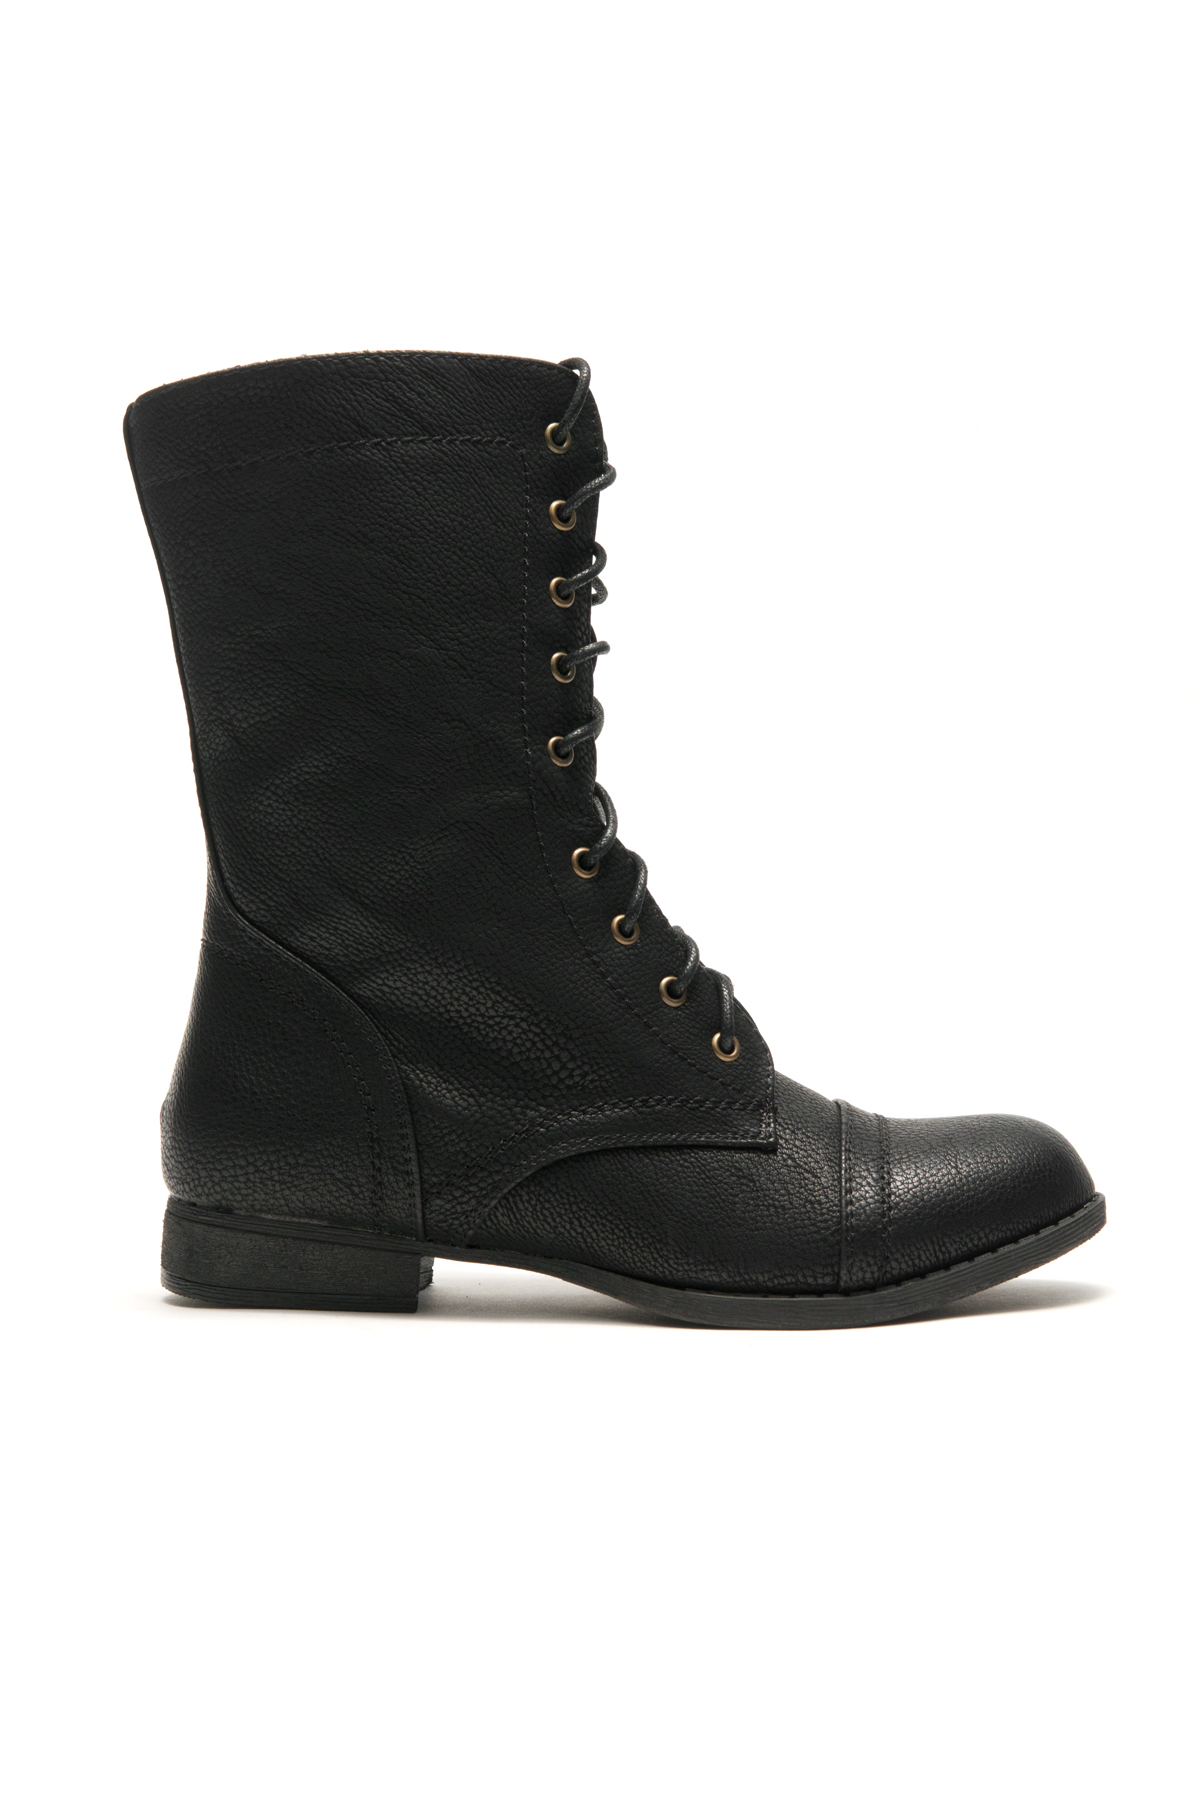 HerStyle Korraa-2 Military Lace up Combat Boots